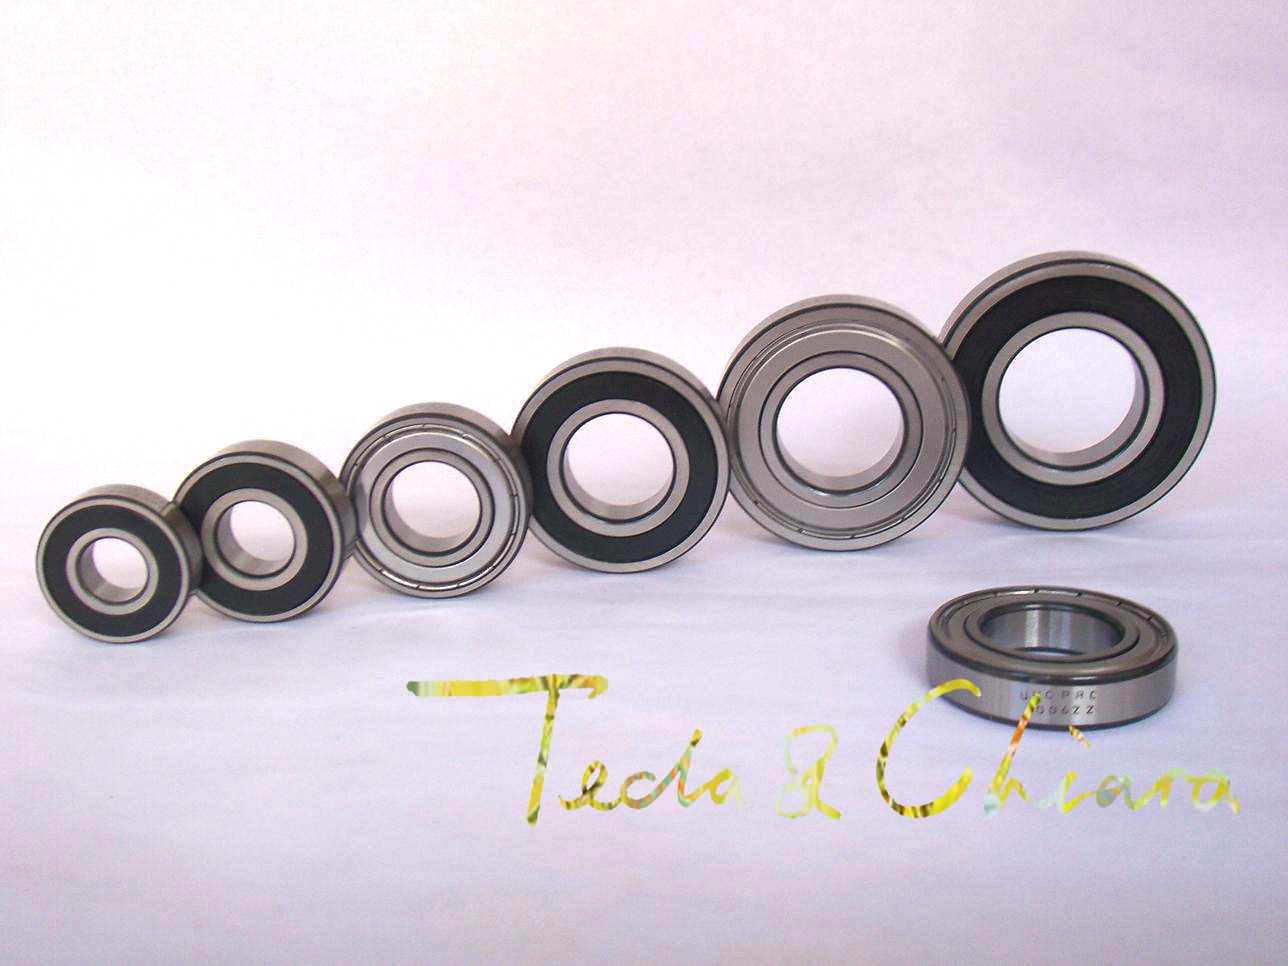 6202 6202ZZ 6202RS 6202-2Z 6202Z 6202-2RS ZZ RS RZ 2RZ Deep Groove Ball Bearings 15 x 35 x 11mm High Quality free shipping 25x47x12mm deep groove ball bearings 6005 zz 2z 6005zz bearing 6005zz 6005 2rs